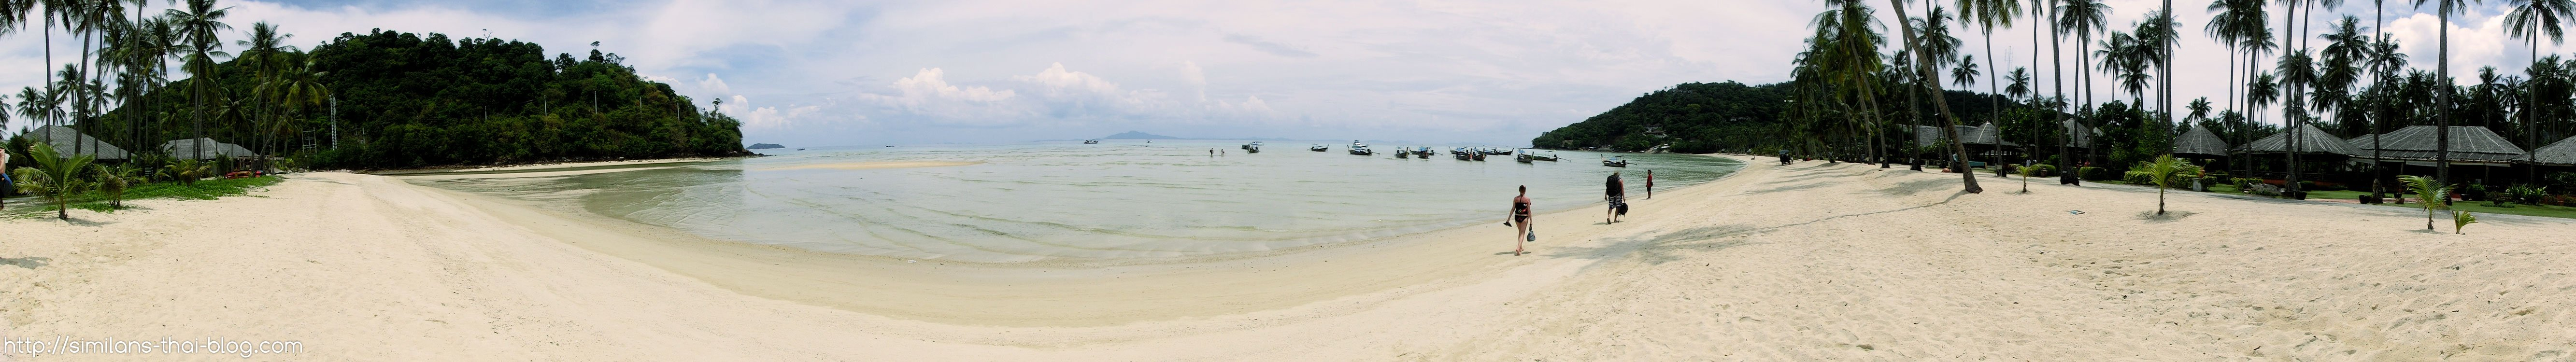 loh-bagao-beach-panorama